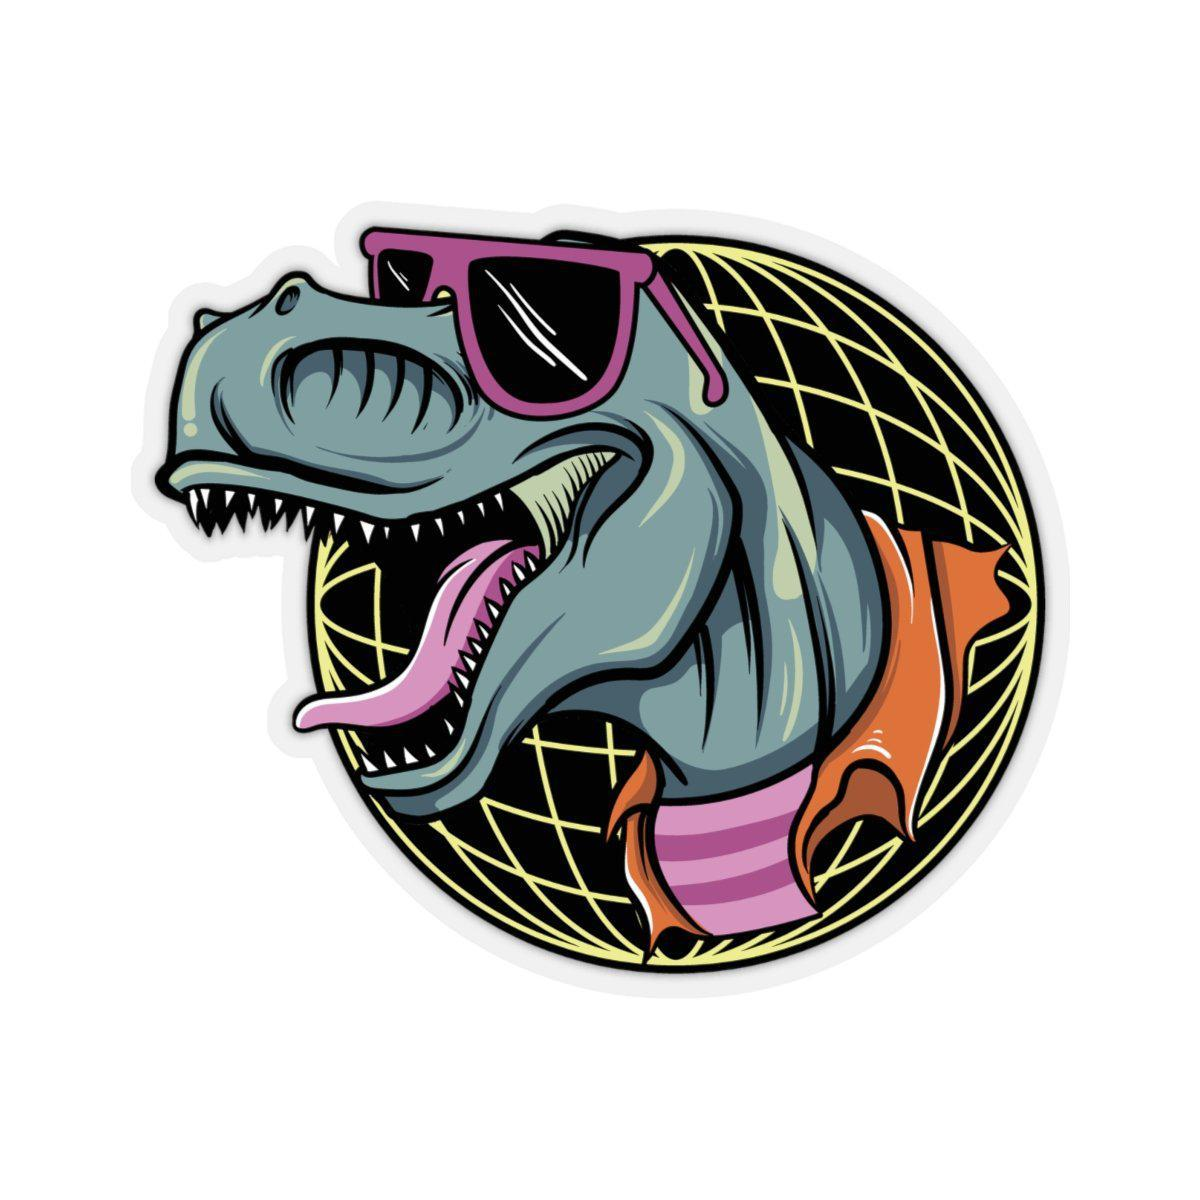 This is a rad neon dinosaur sticker with a 1980's vibe.